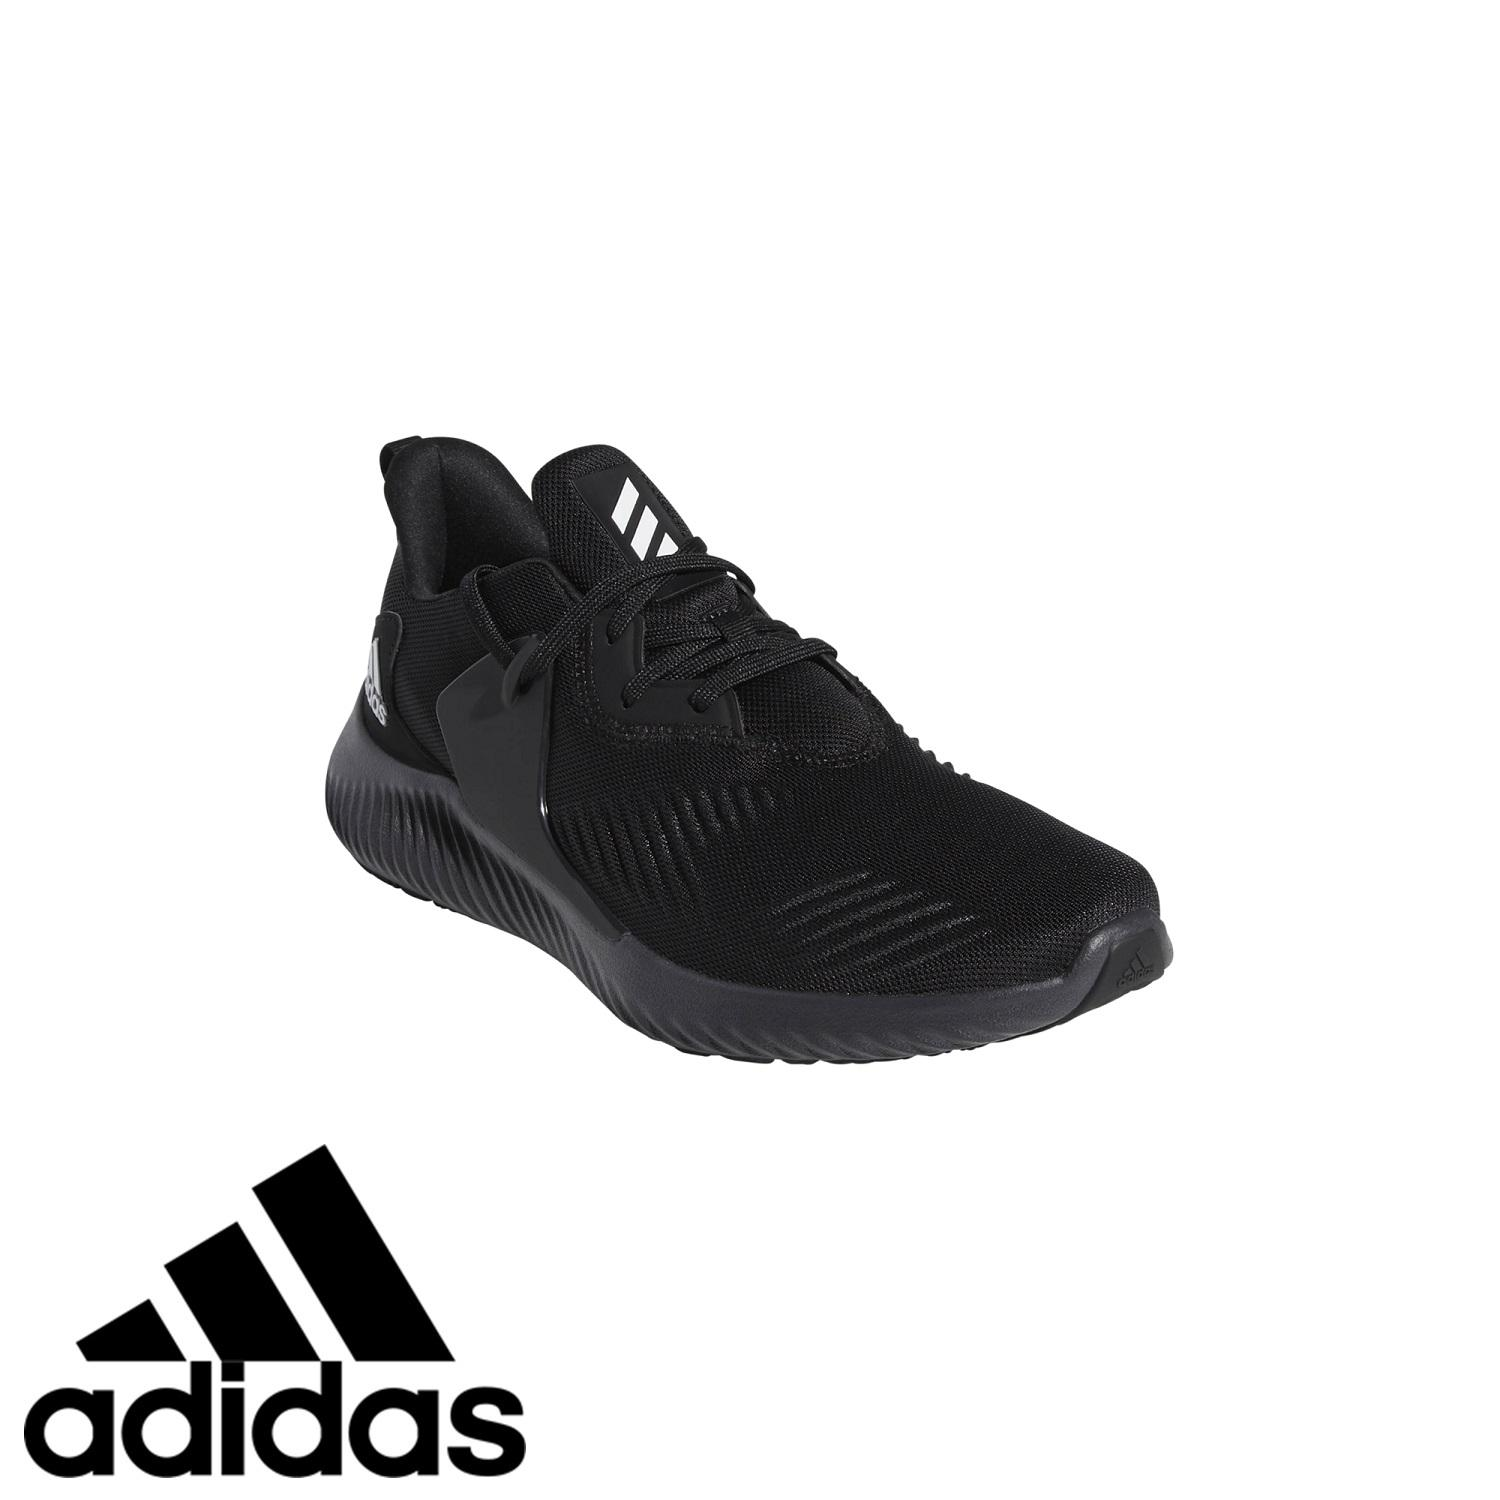 dca556d77ee9 Adidas Sports Shoes Philippines - Adidas Sports Clothing for sale ...